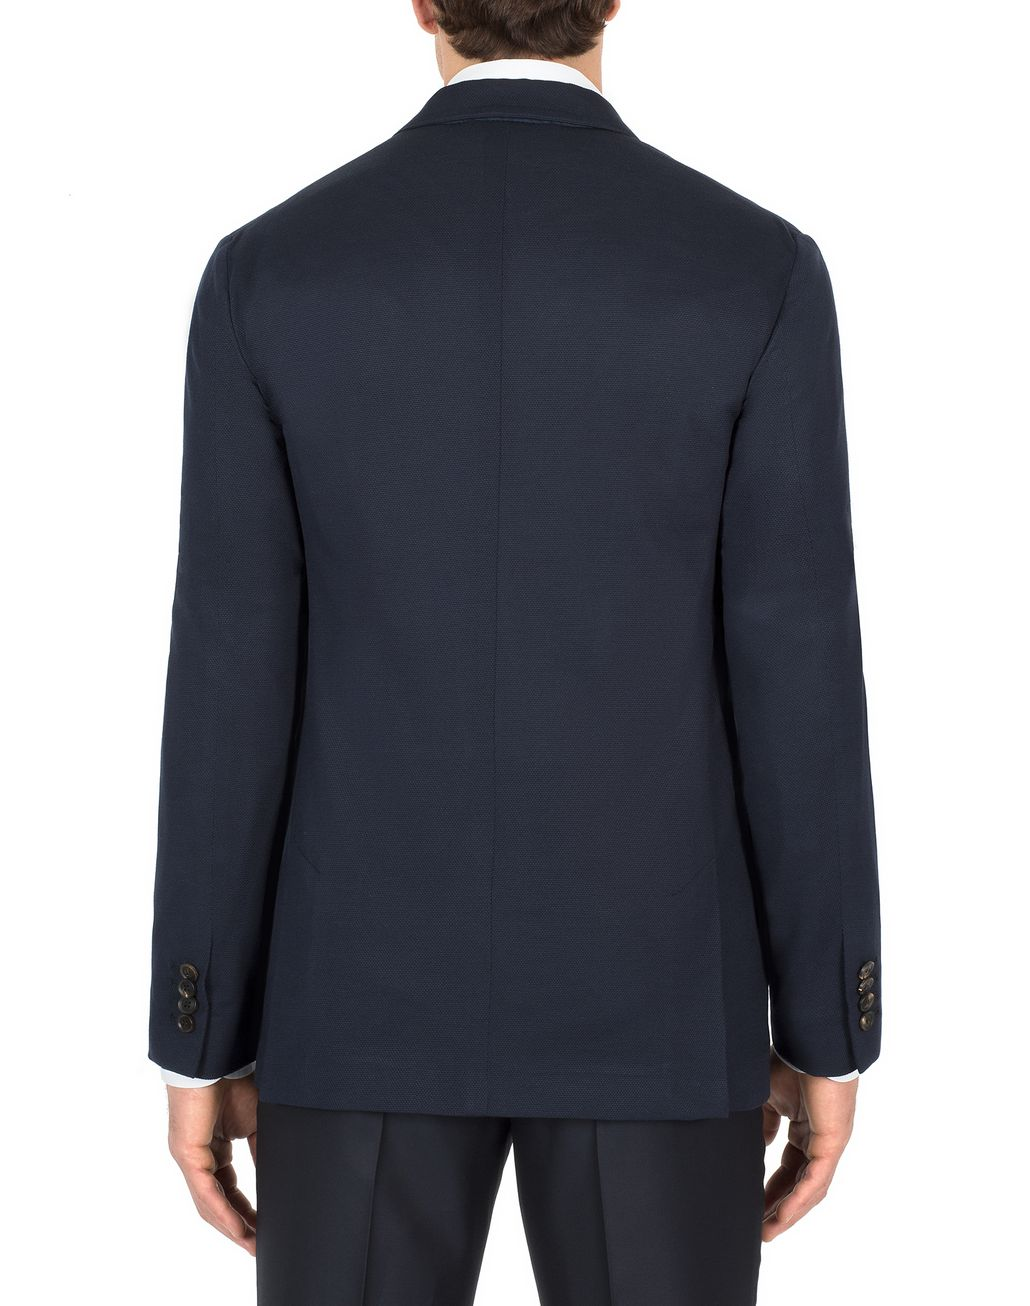 BRIONI Navy-Blue Silk Piqué Jacket Jackets Man d